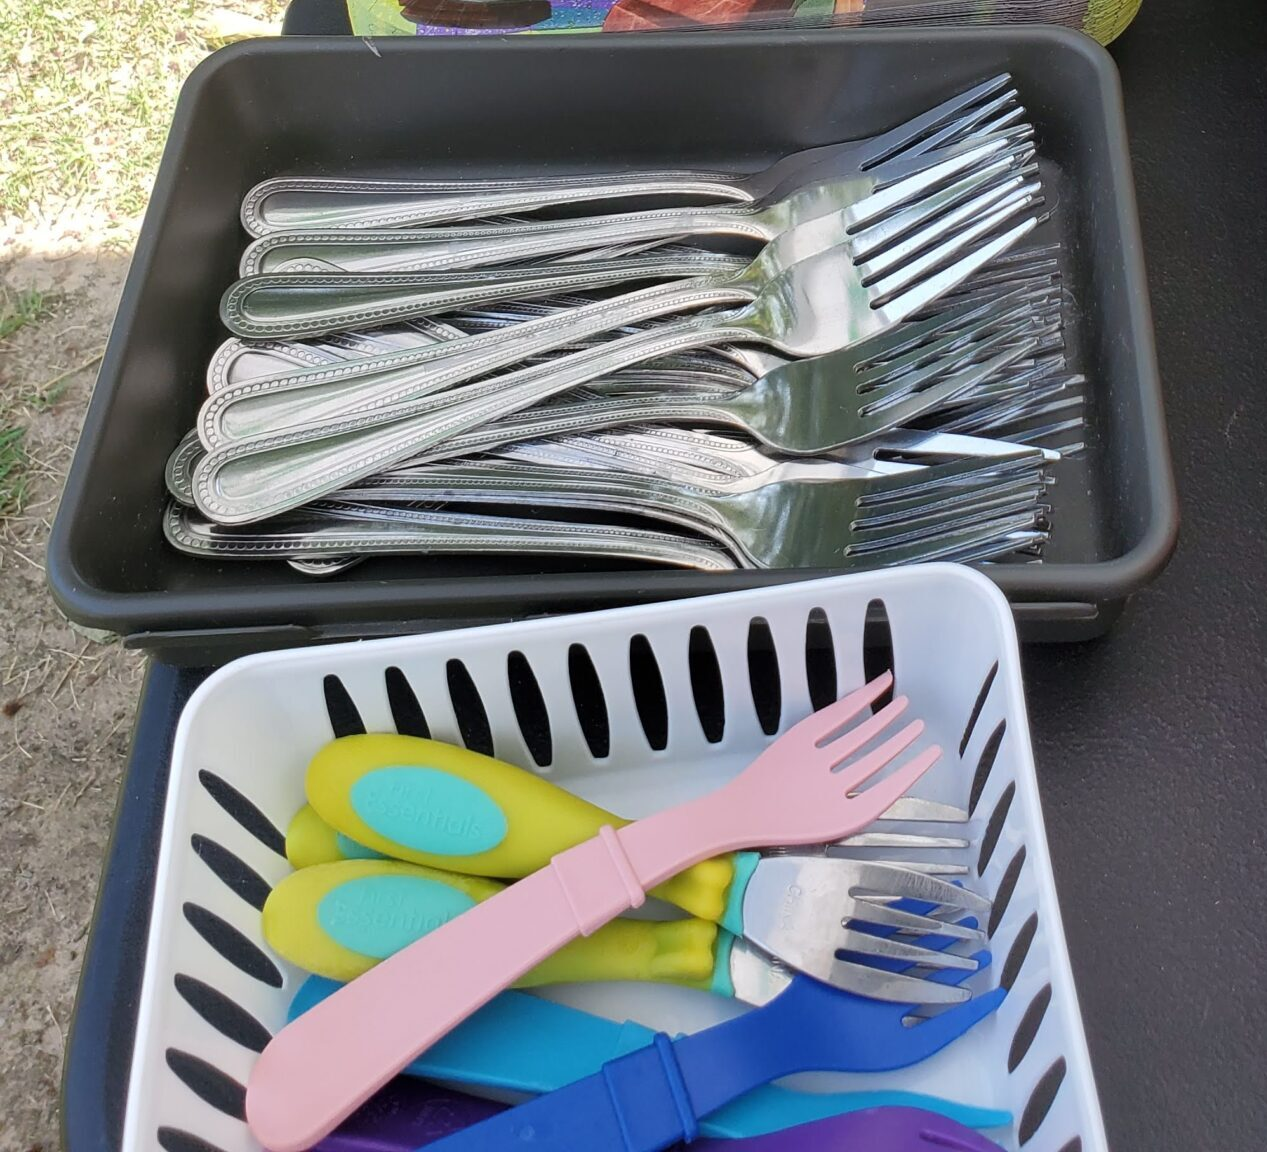 Regular silverware forks in a tray for adults and reusable child forks in another tray for kids.